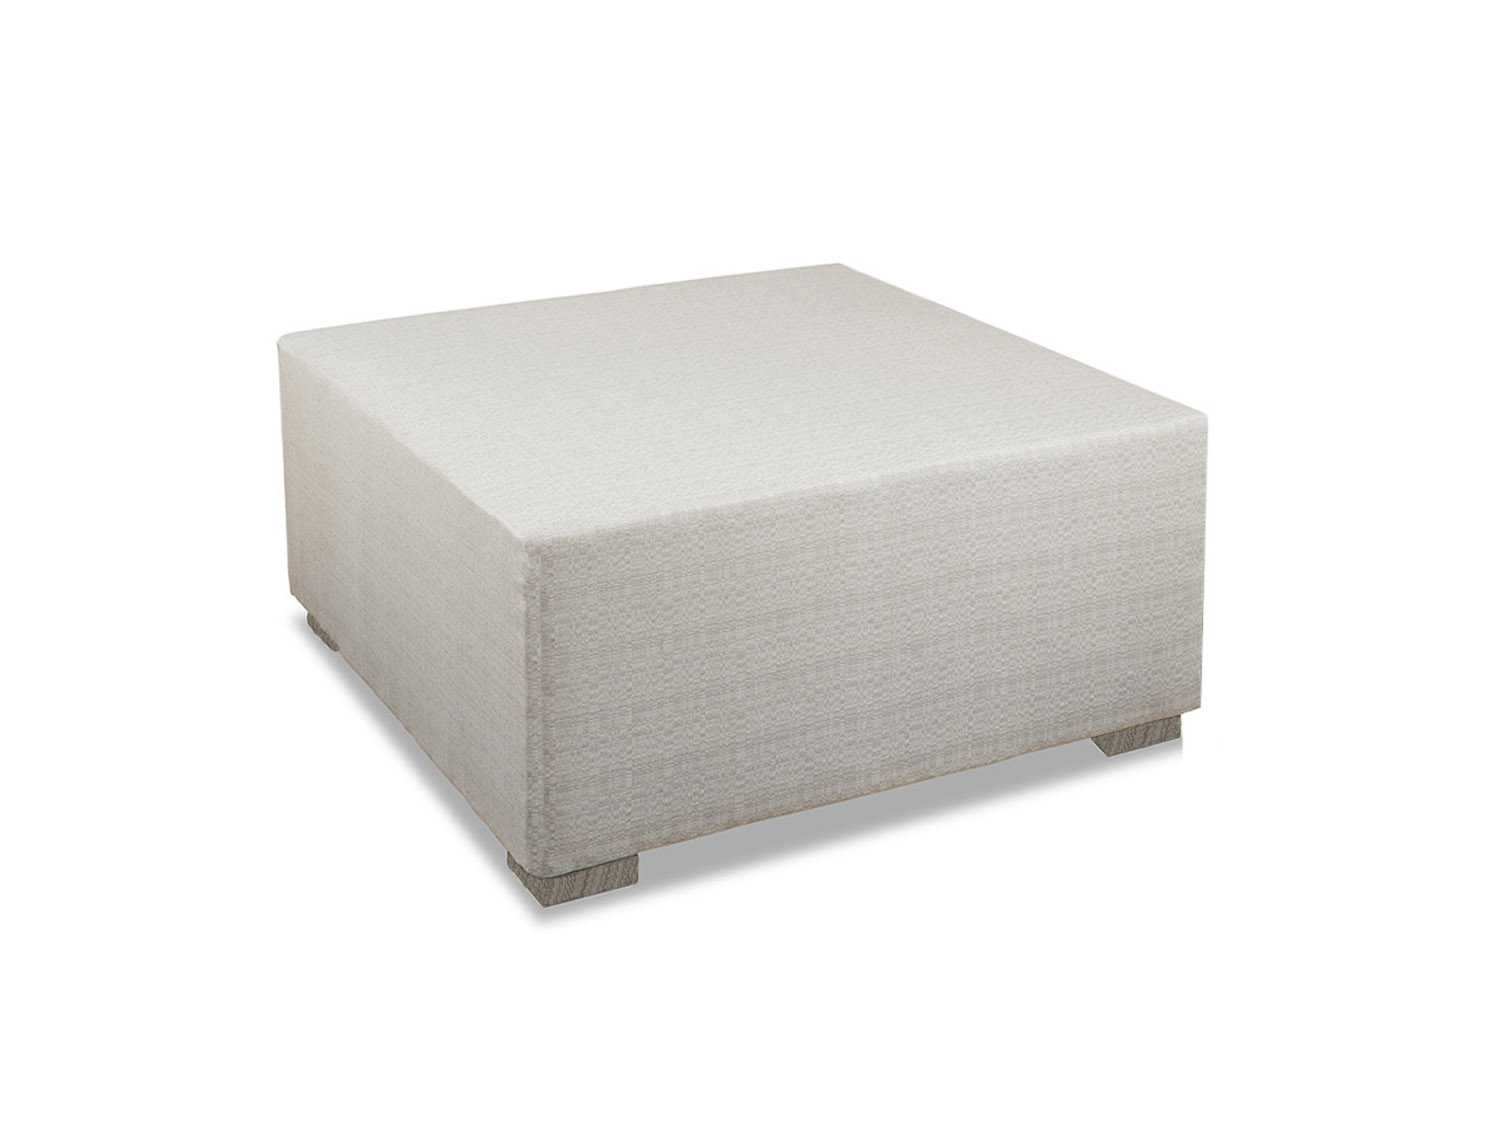 South Sea Rattan Large Square Cocktail Ottoman 72092